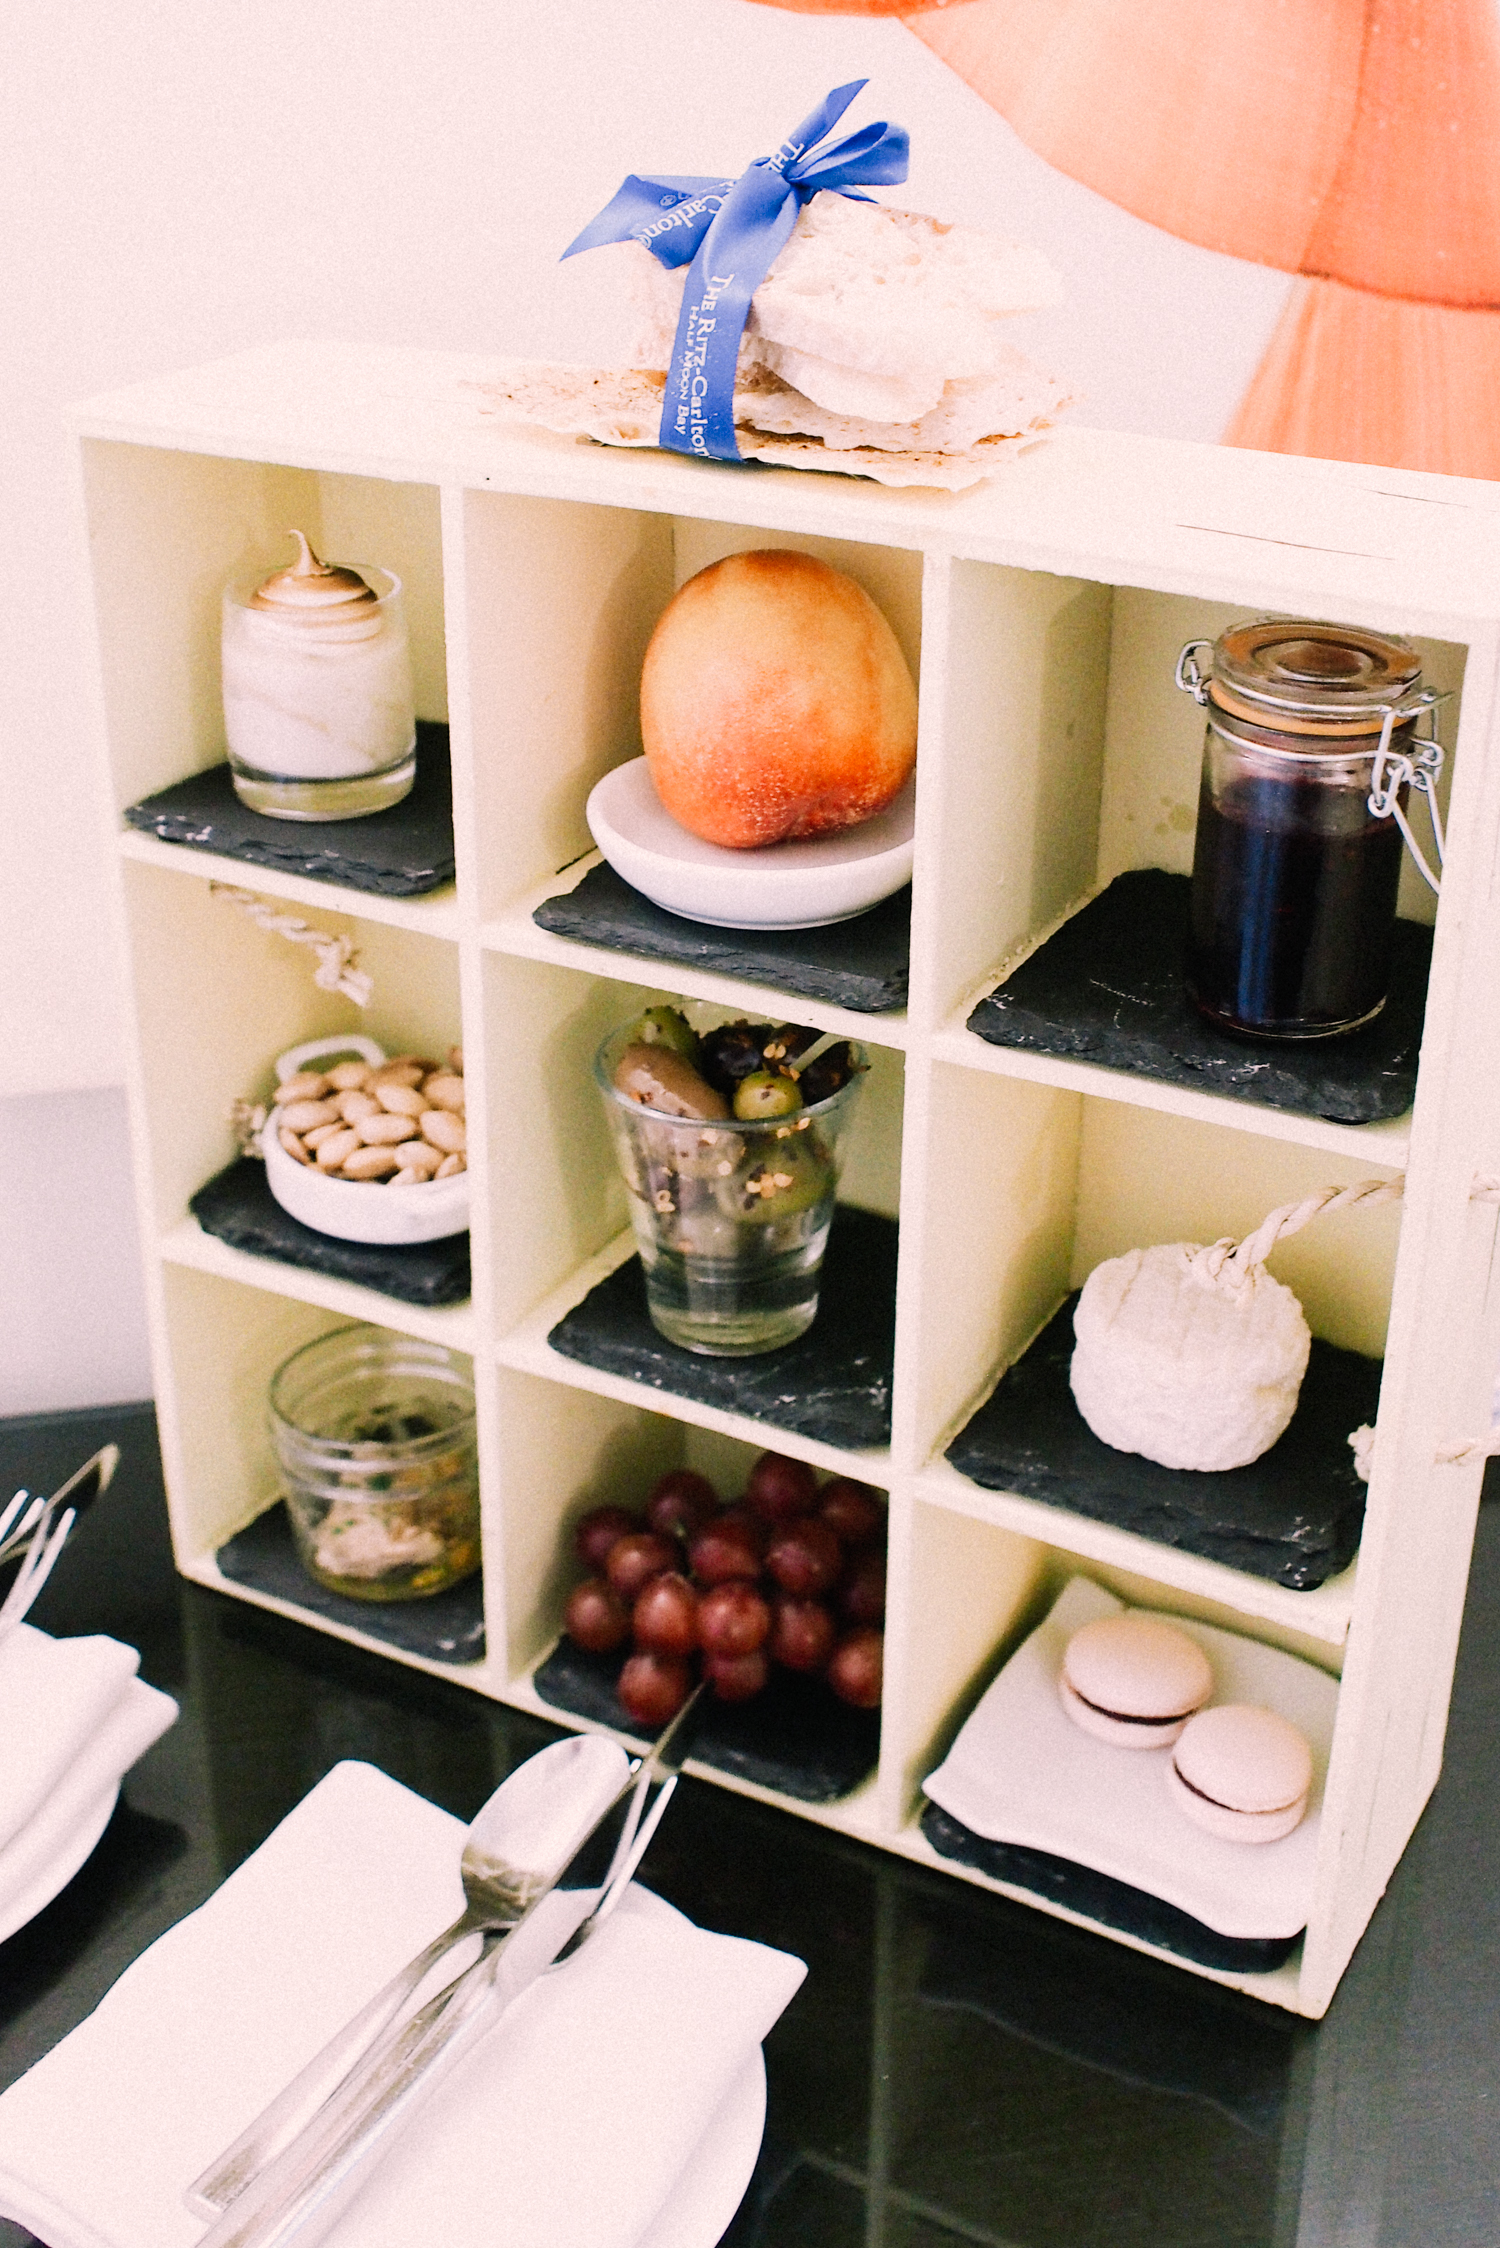 Such a cute idea for a welcome amenity at The Ritz | A Fabulous Fete